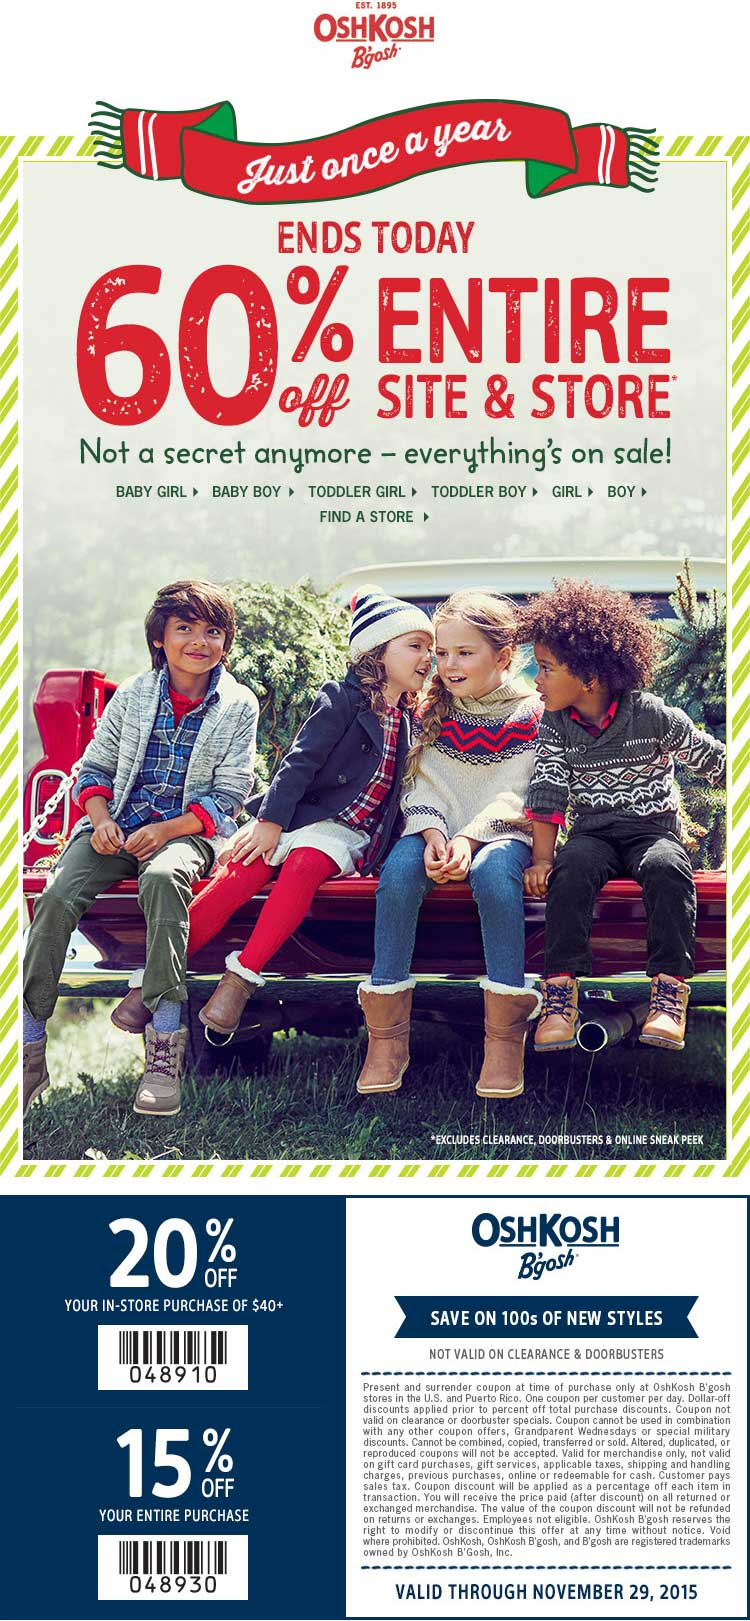 OshKosh Bgosh Coupon February 2017 60% off everything today at Carters & OshKosh Bgosh, ditto online